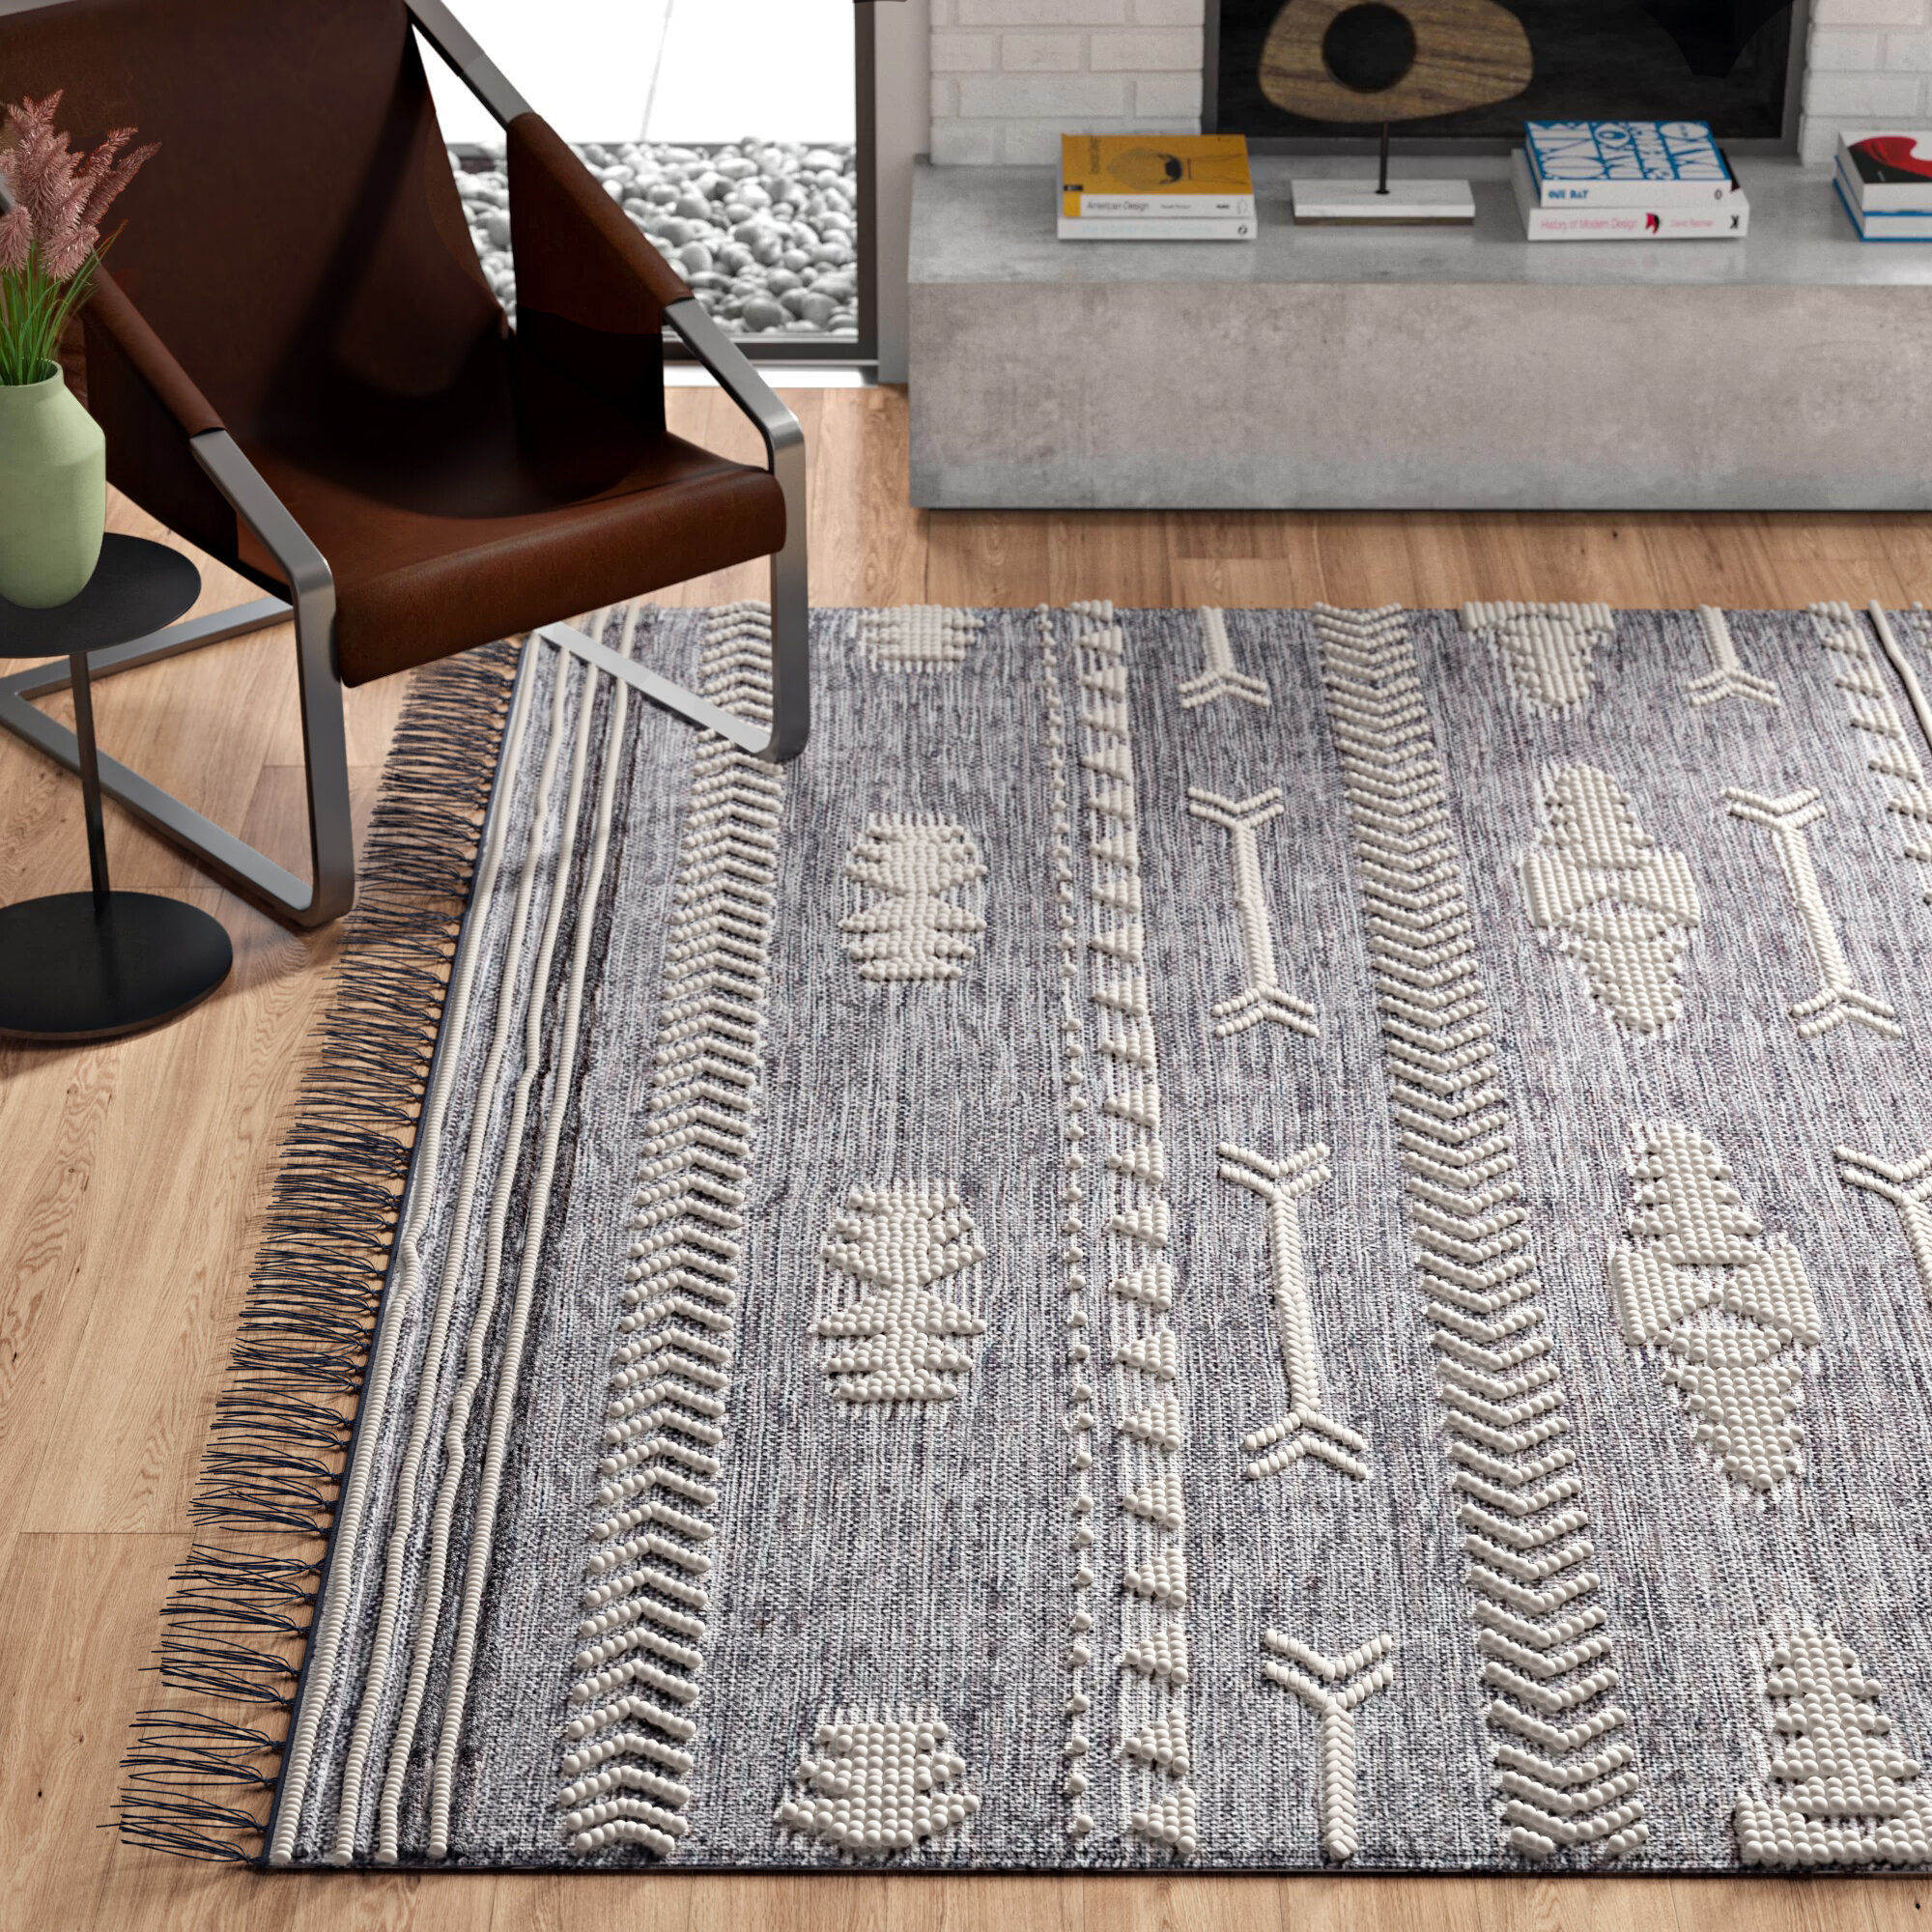 Cypres Abstract Handmade Tufted Brown Tan Area Rug Reviews Allmodern